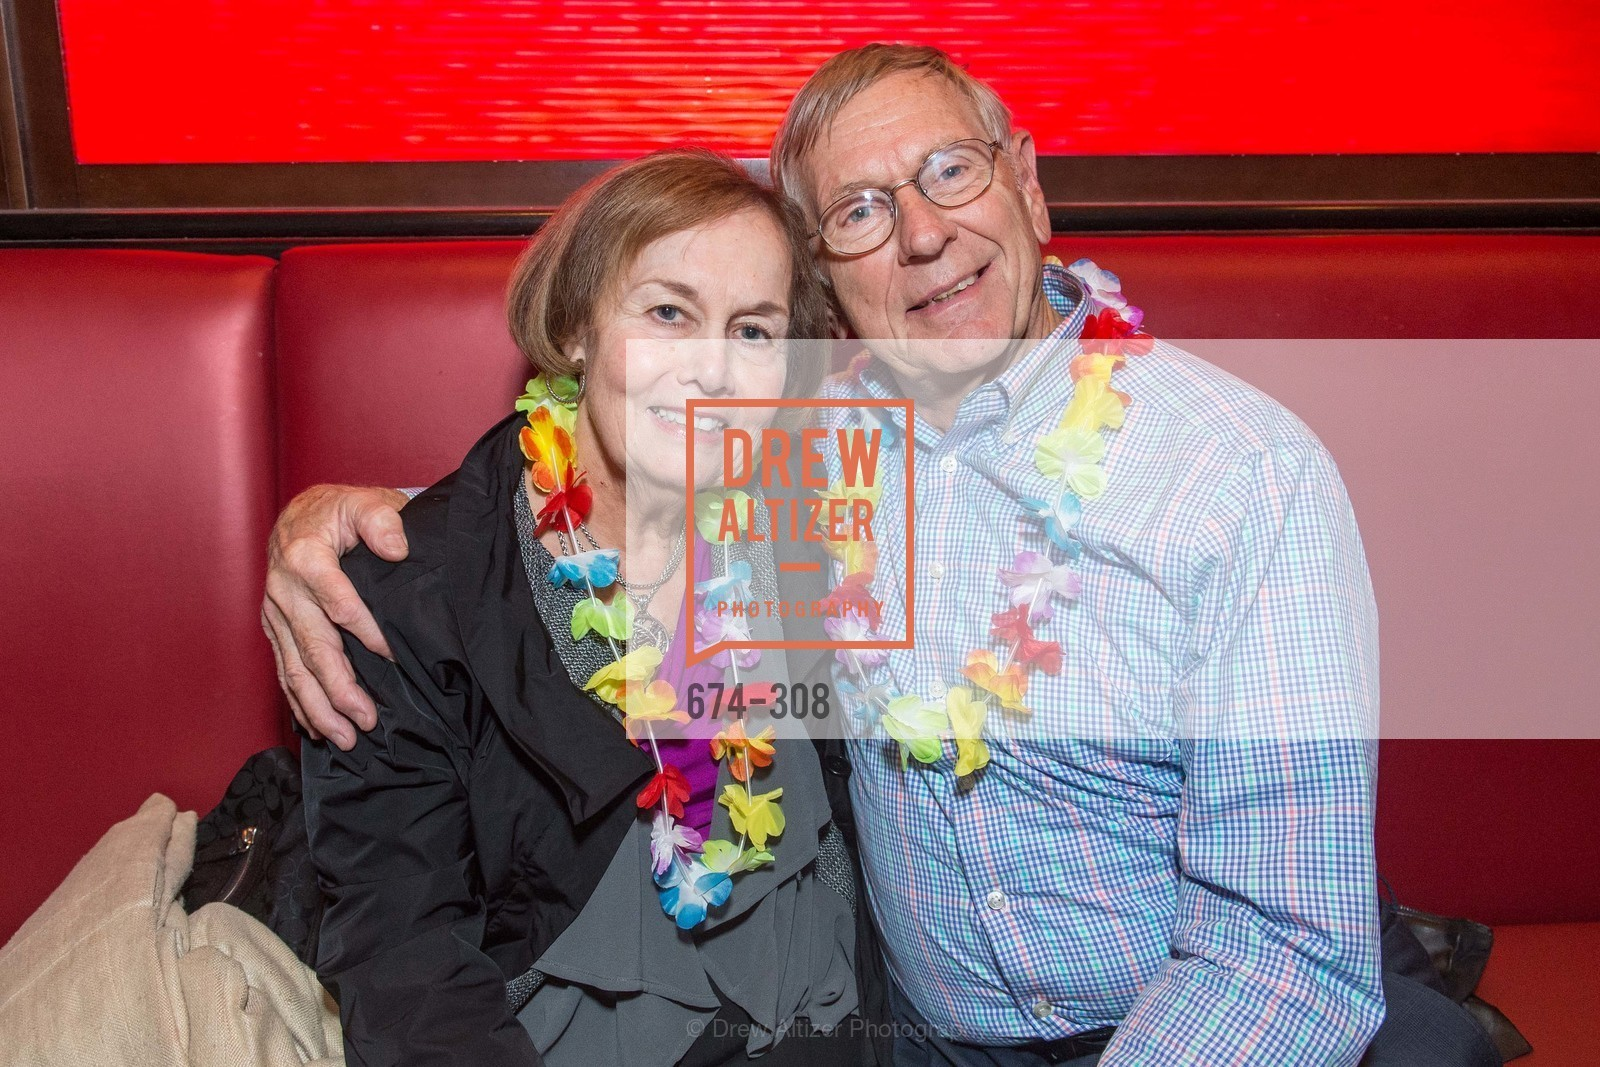 Angela Cohl, Kenneth Cohl, Tonga Room & Hurricane Bar Celebrates 70 Years of Tiki Glory, Fairmont, September 23rd, 2015,Drew Altizer, Drew Altizer Photography, full-service agency, private events, San Francisco photographer, photographer california